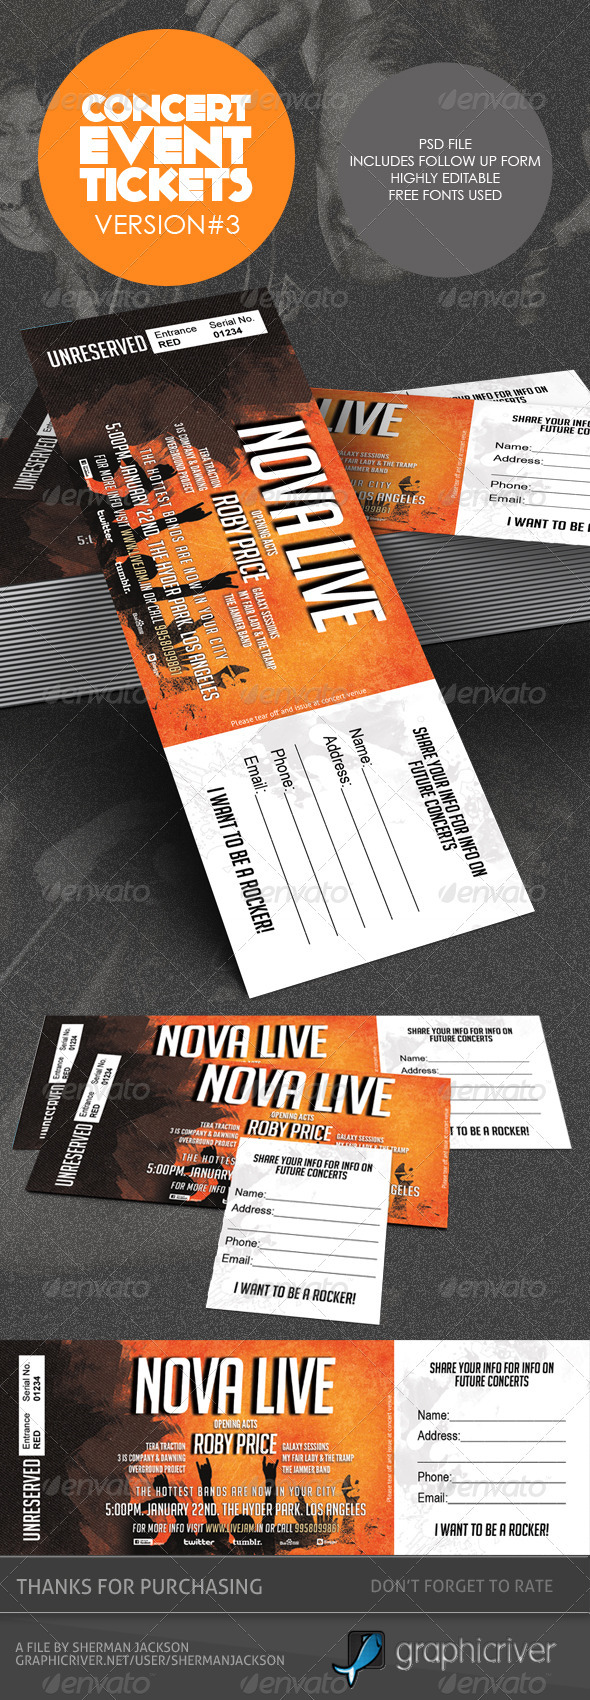 Concert Event TicketsPasses Version 3 by ShermanJackson